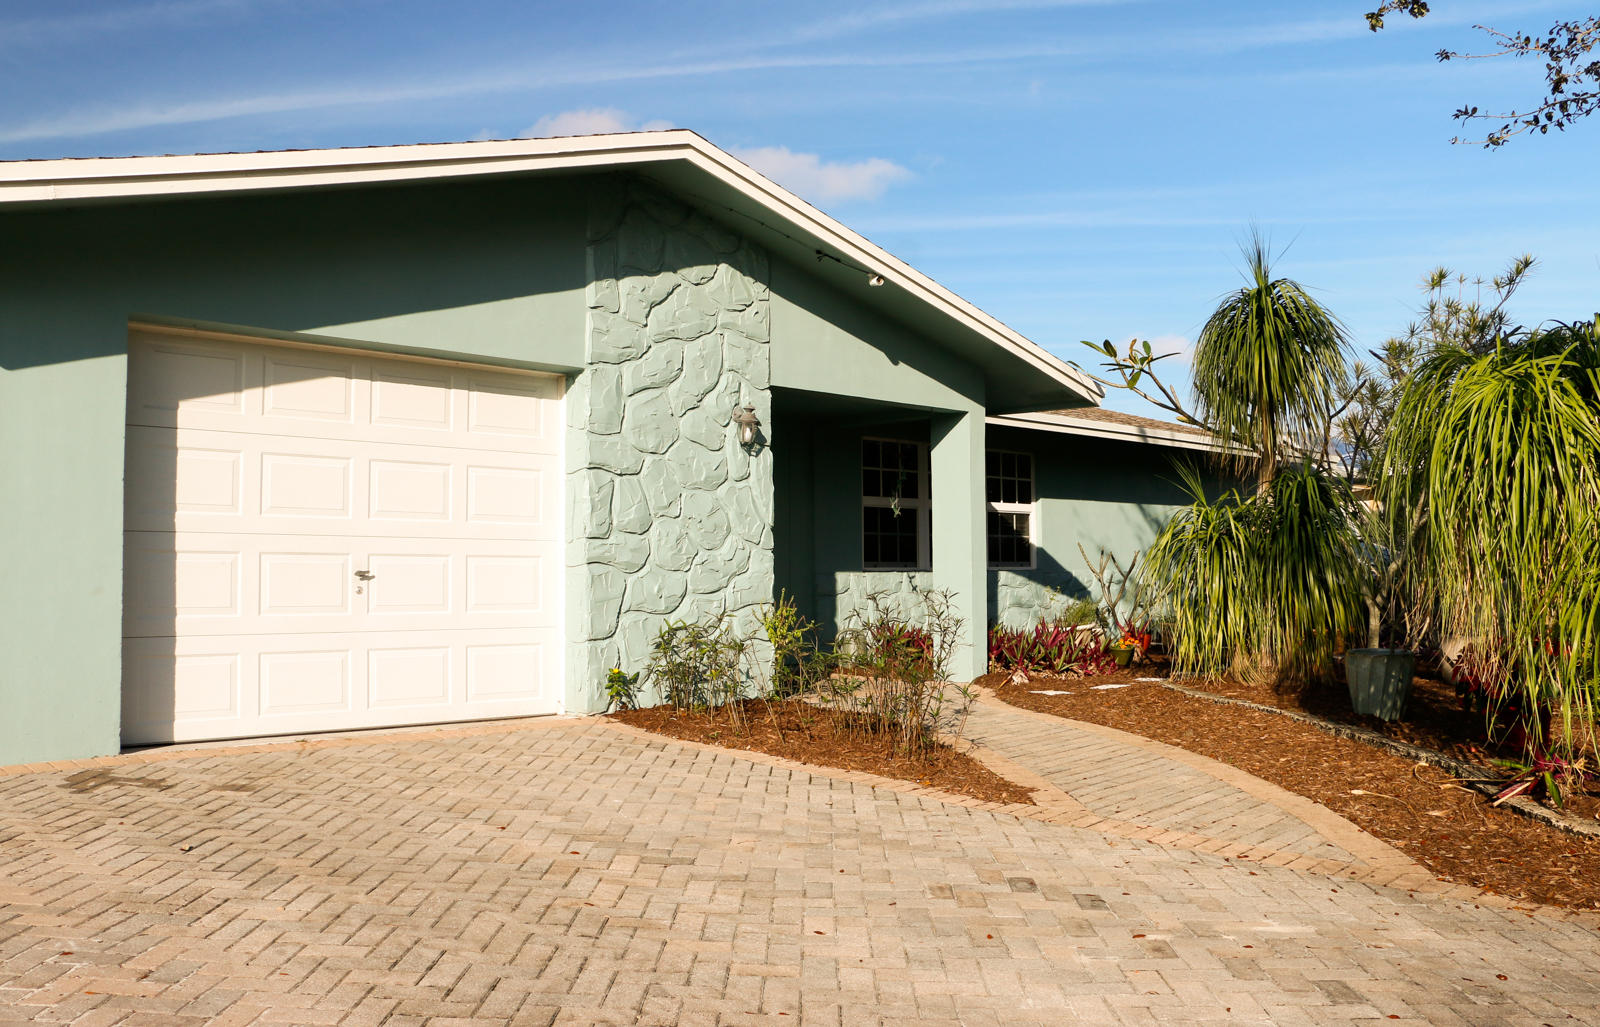 PALM BEACH GARDENS 6 REAL ESTATE